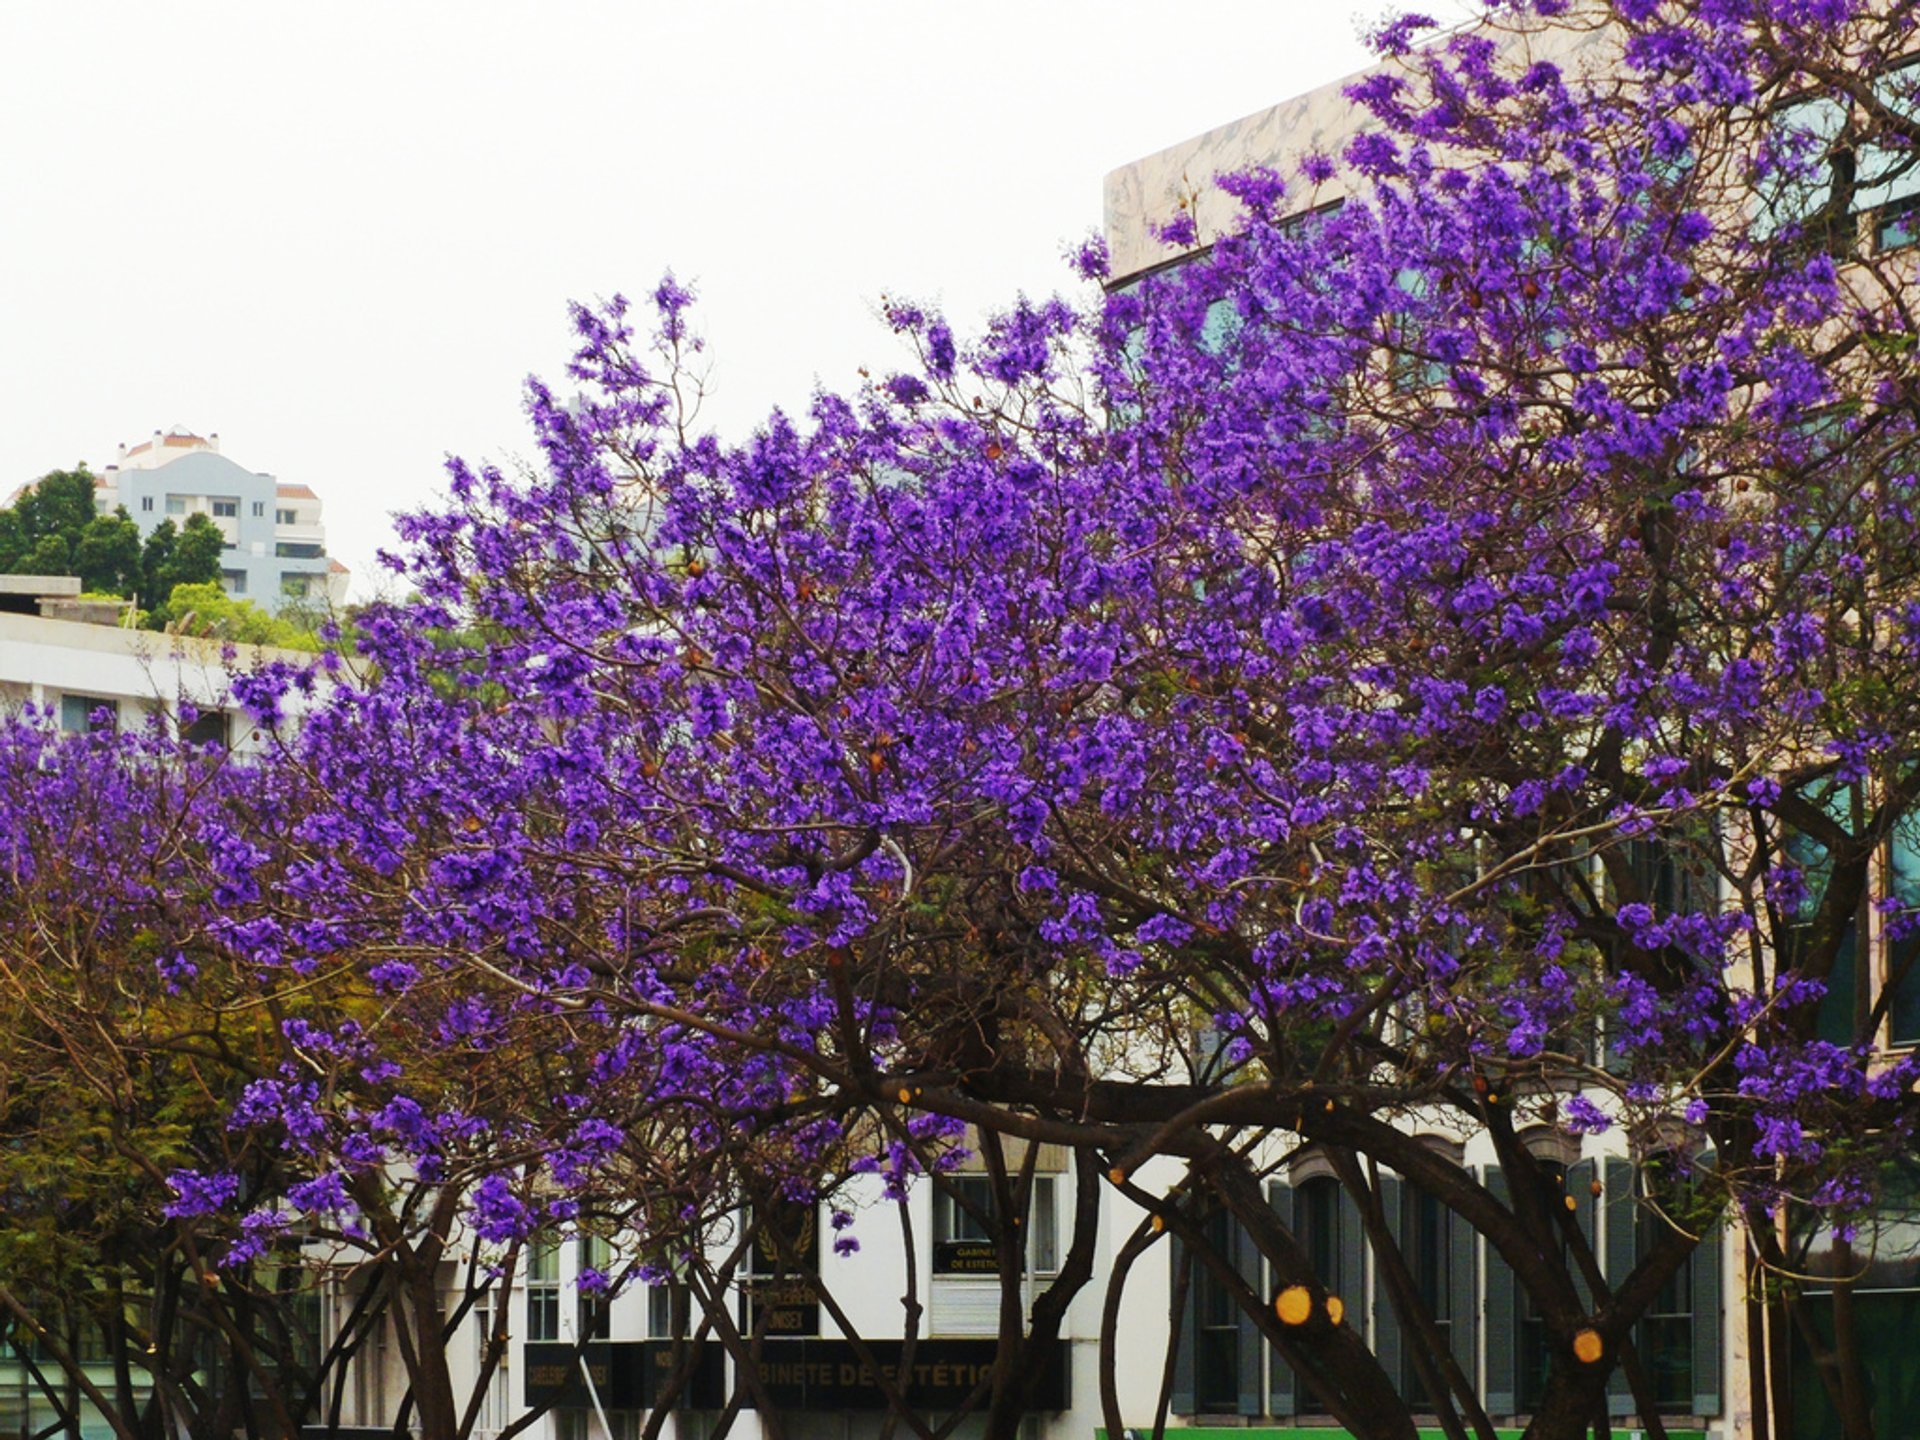 Jacaranda Trees in Bloom in Madeira - Best Time